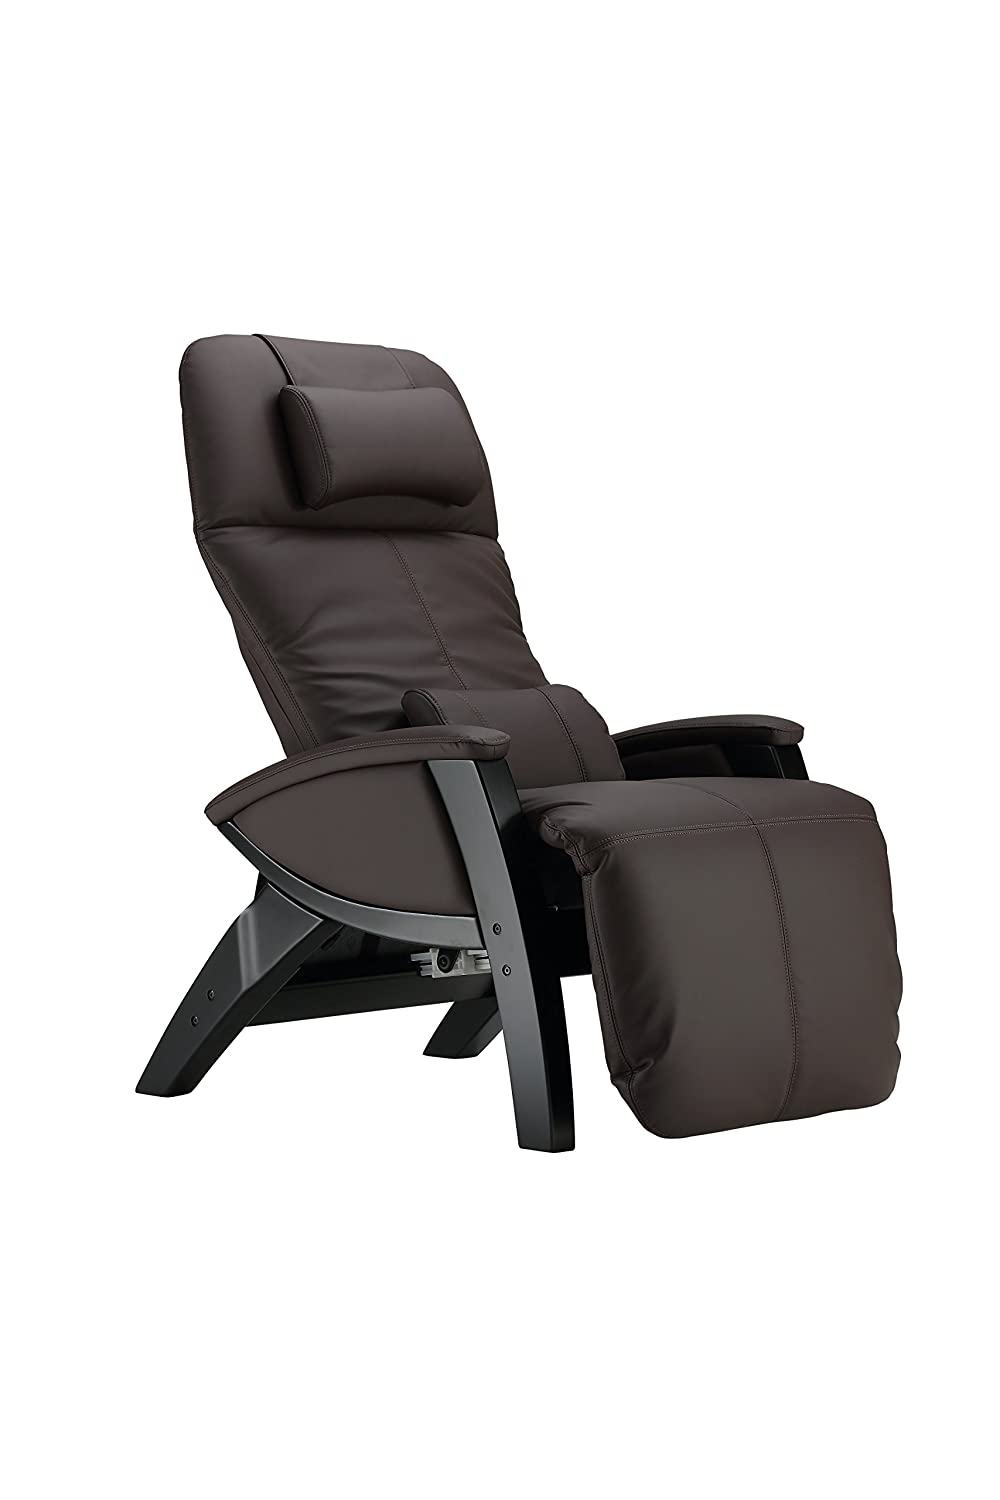 Who Makes The Best Quality Recliners Cuddly Home Advisors